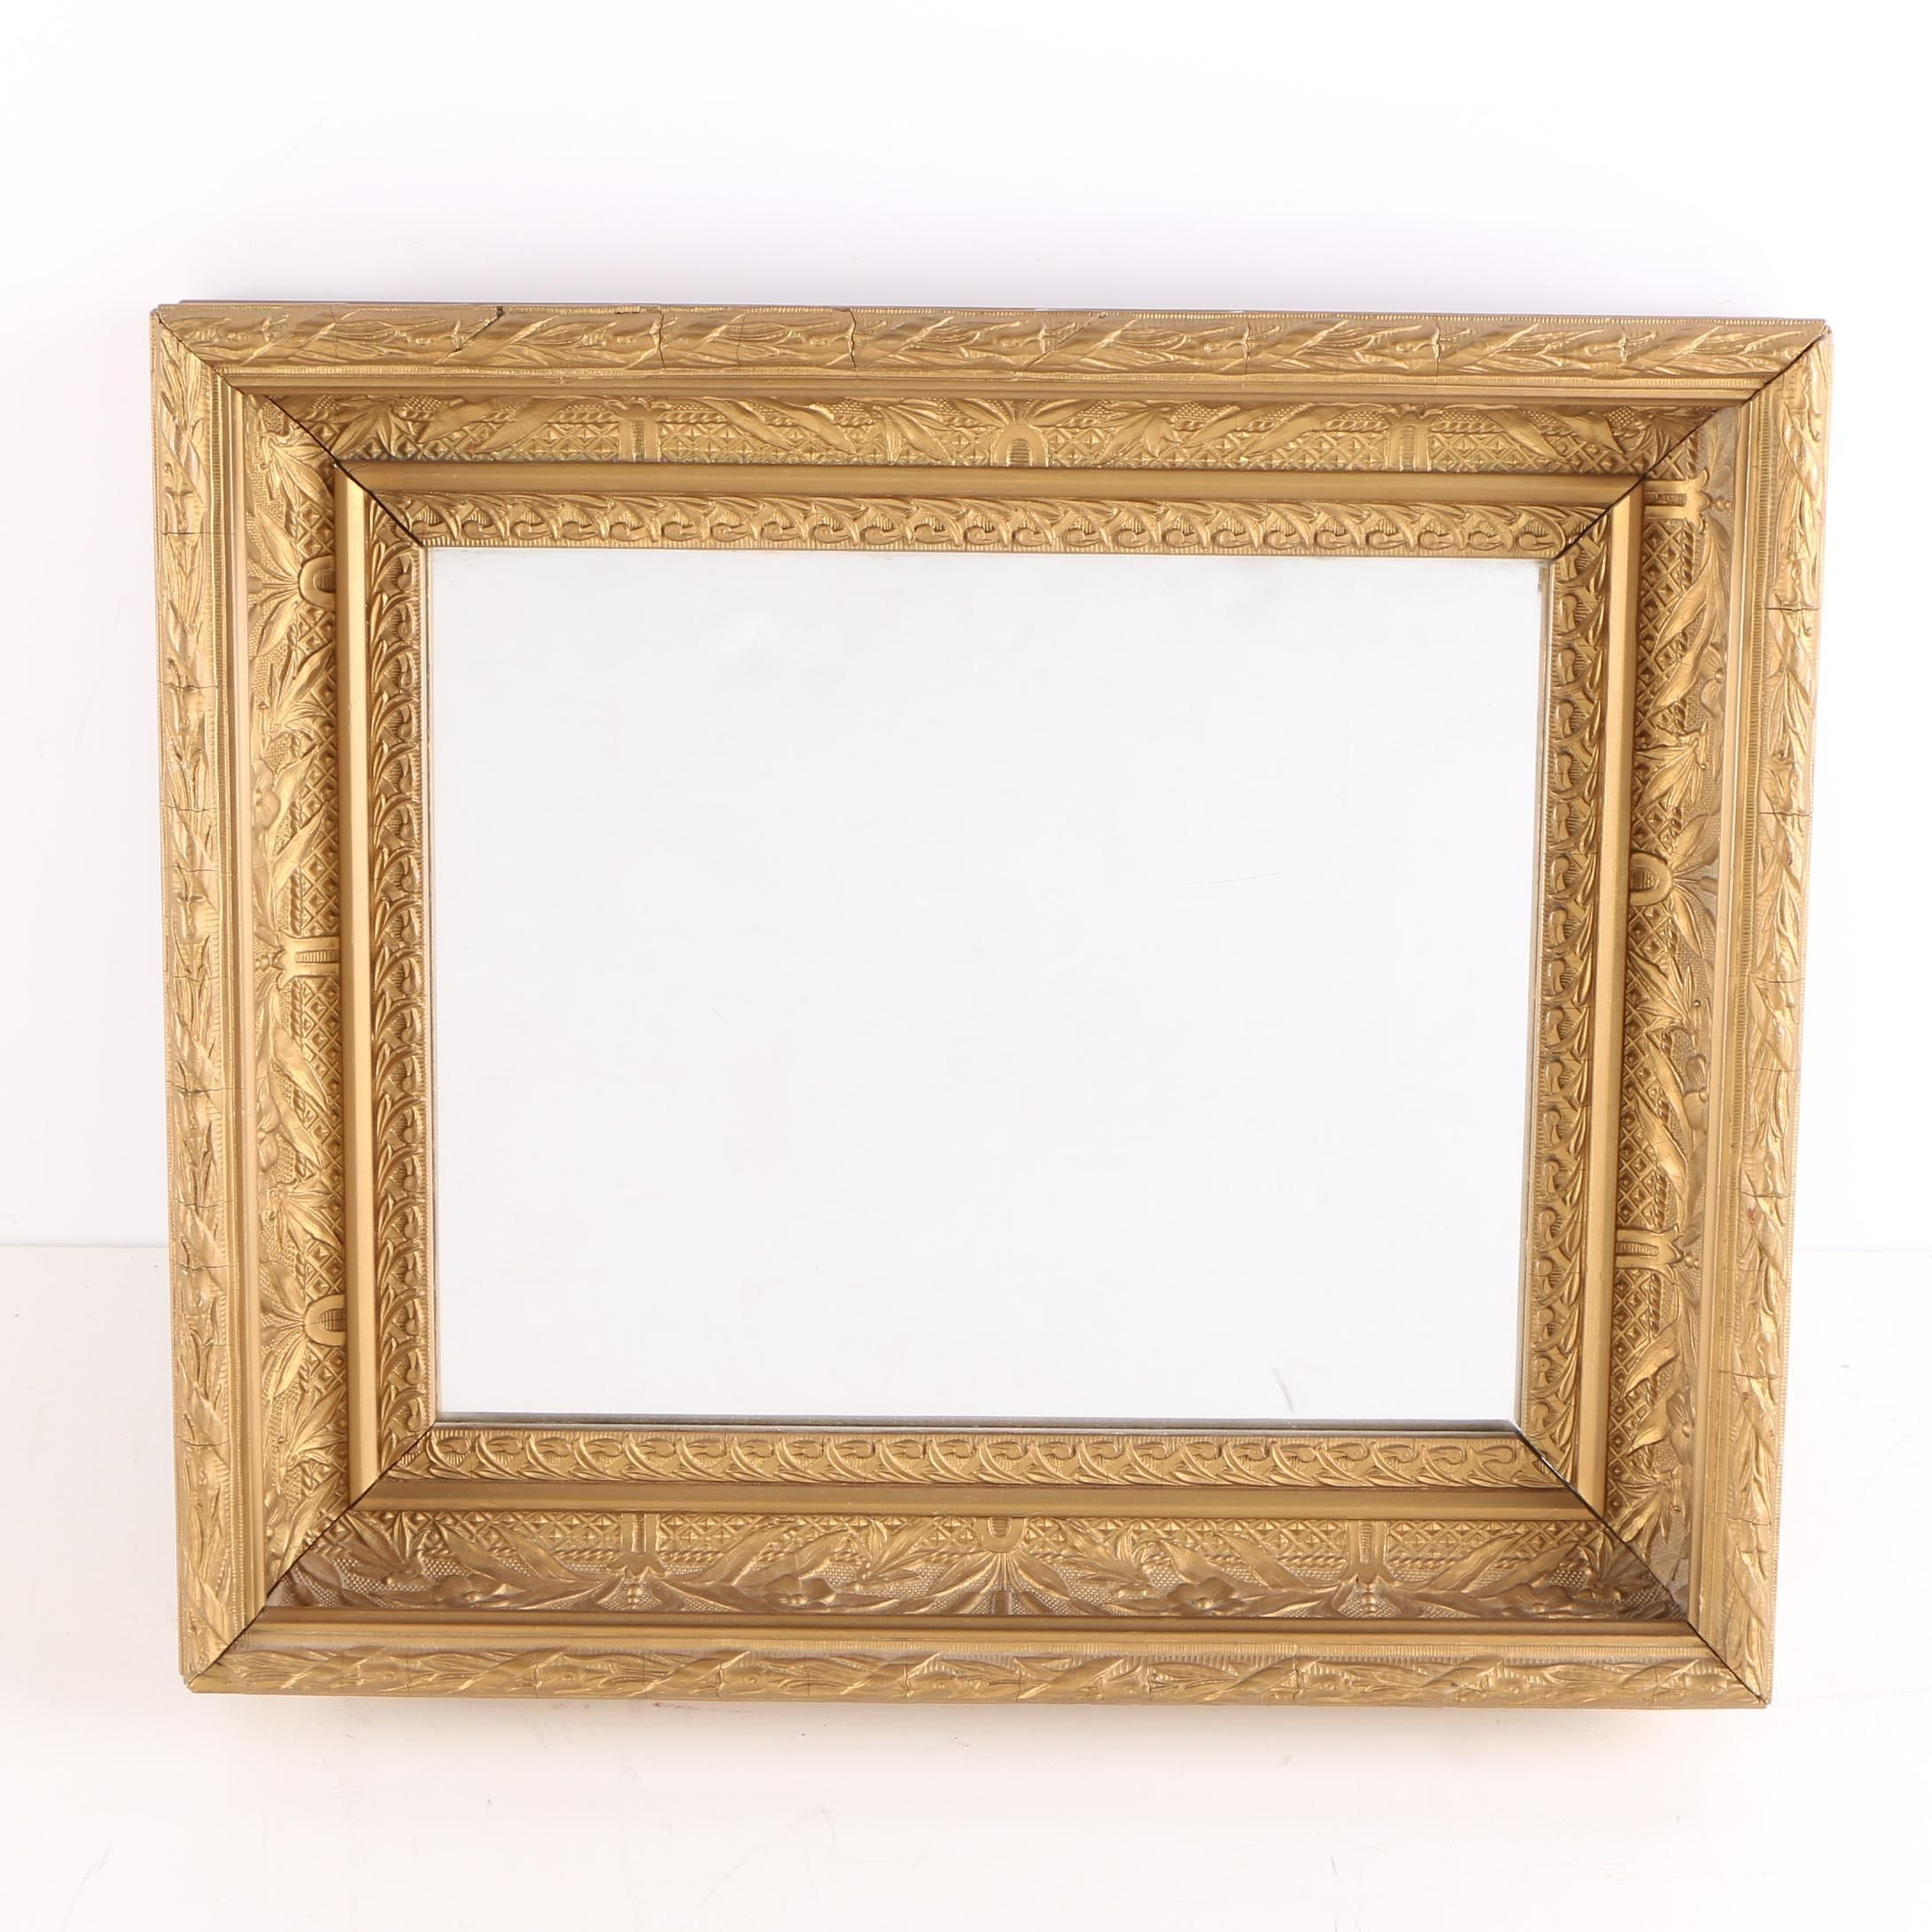 Wall Mirror in Gold Tone Wood Frame